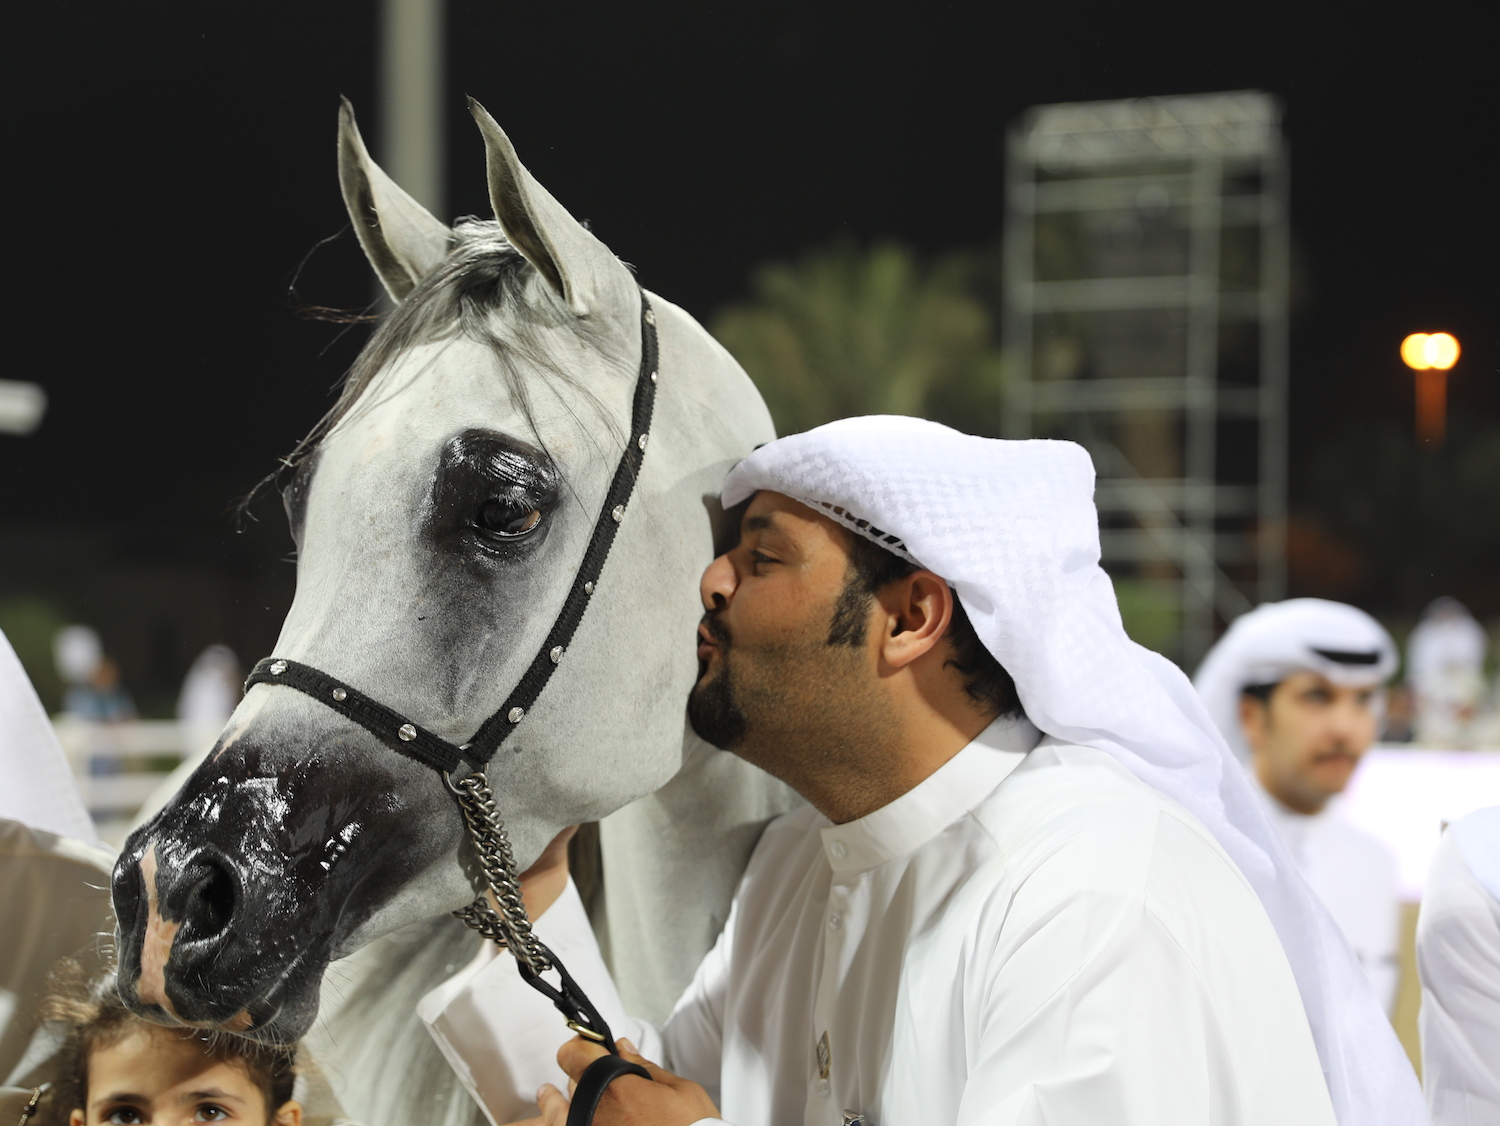 Kuwait Nationals - A Kiss For The Winner - photo by Michael Steurs